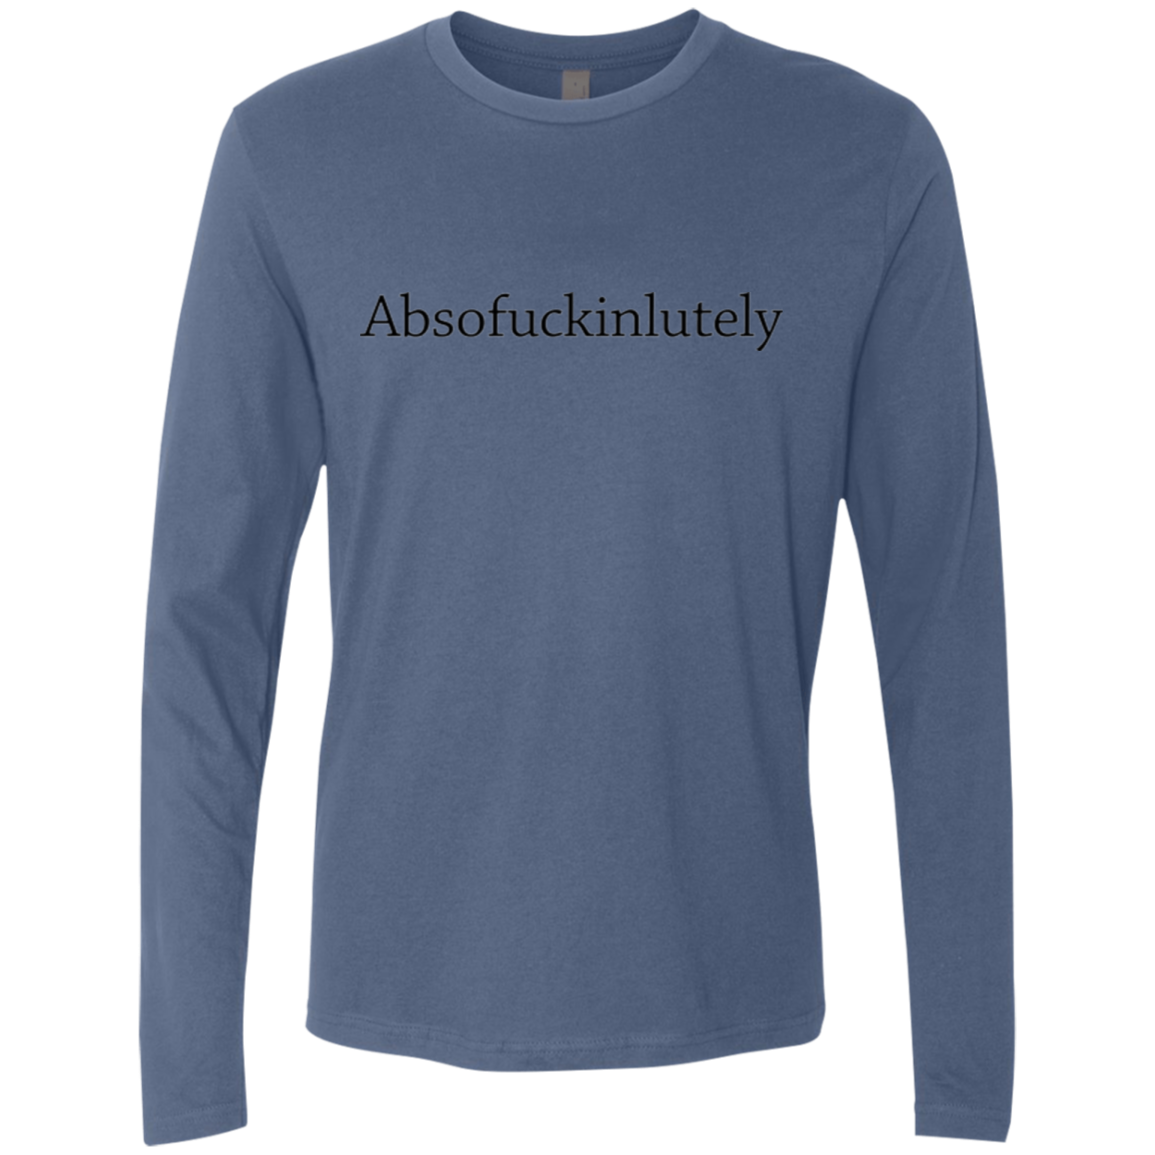 Absofuckinlutely Men's Long Sleeve Tee - Trendy Tees